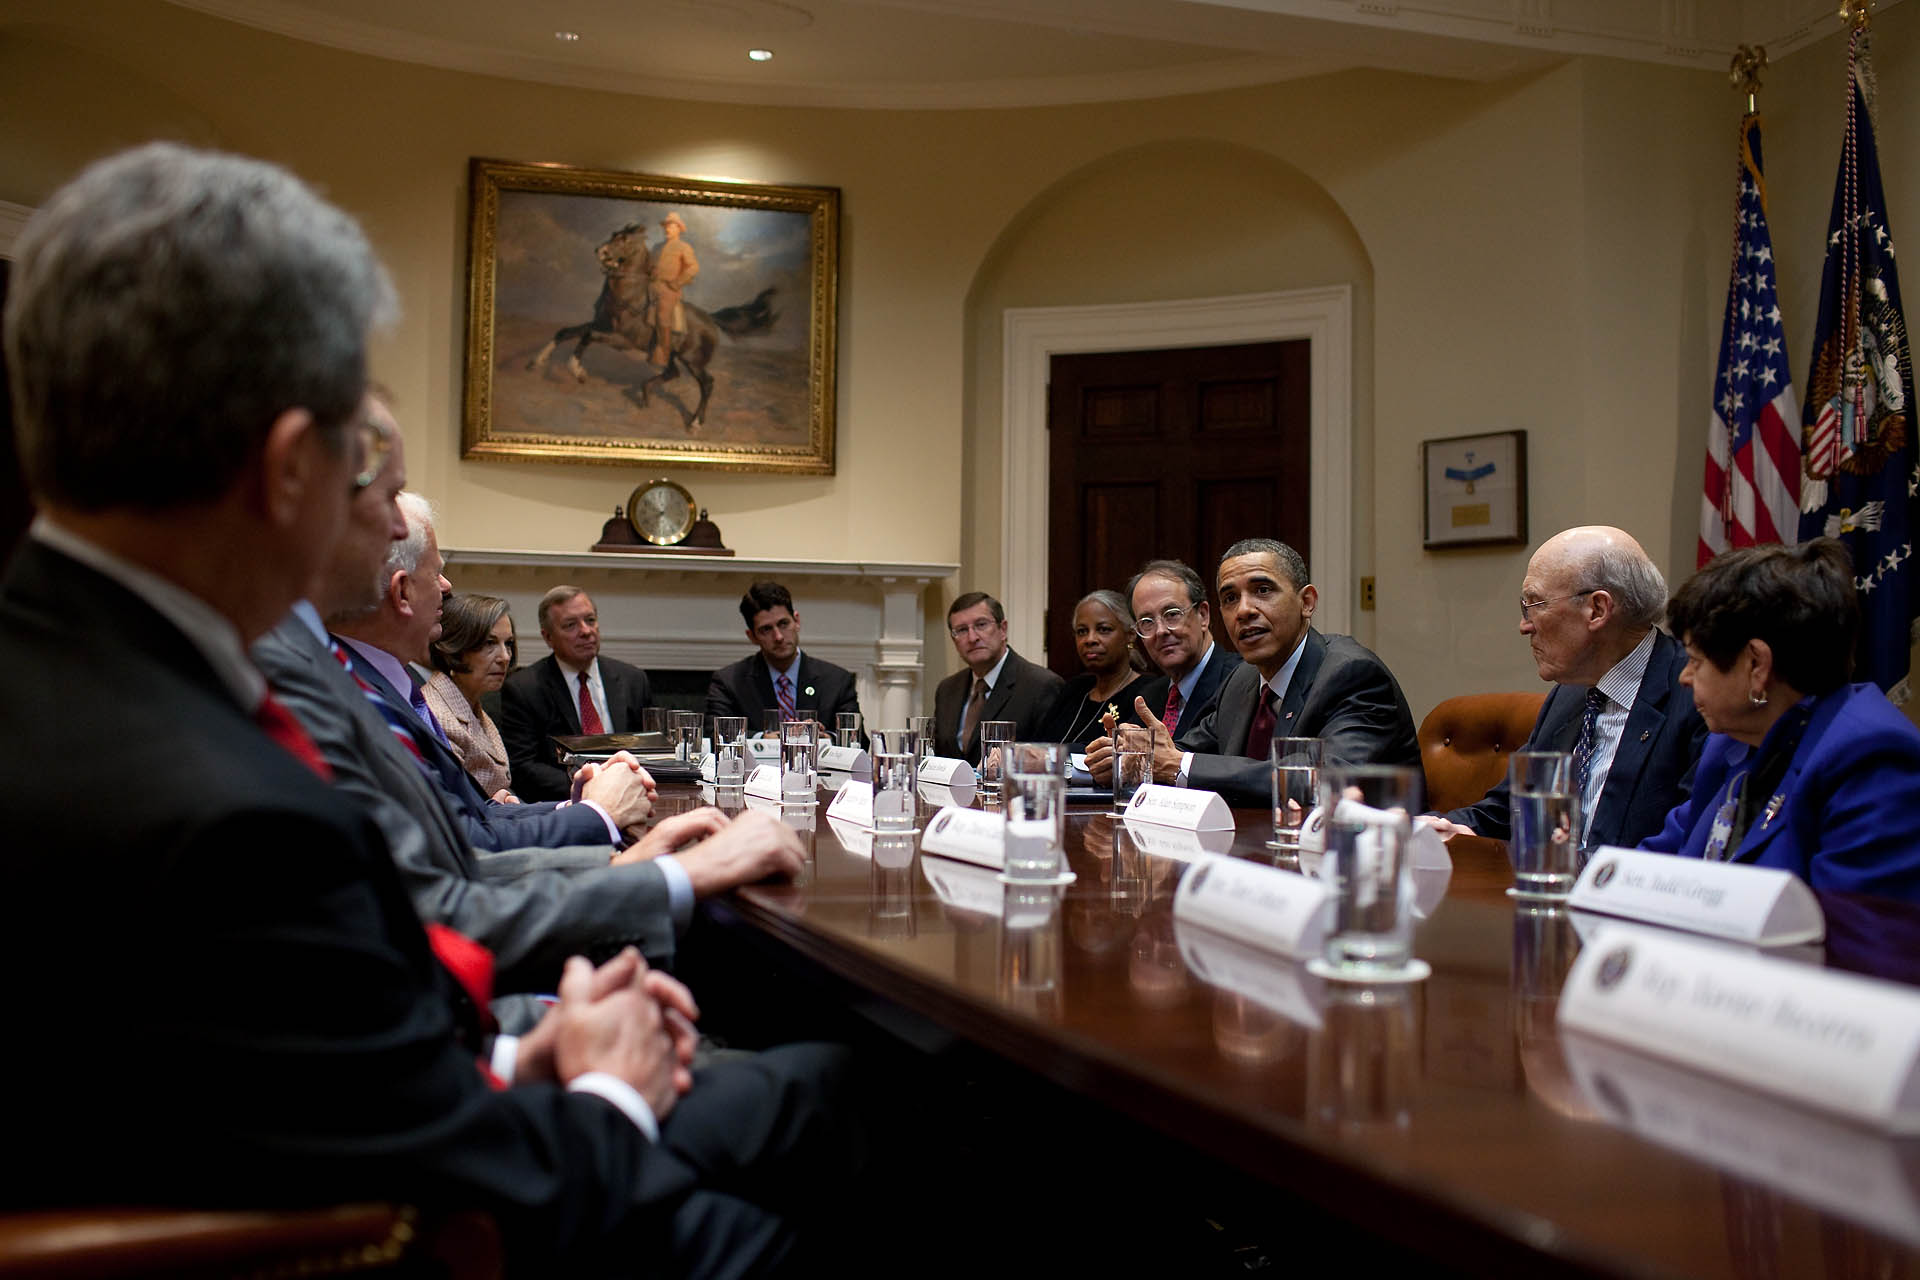 President Obama Meets with National Commission on Fiscal Responsibility and Reform